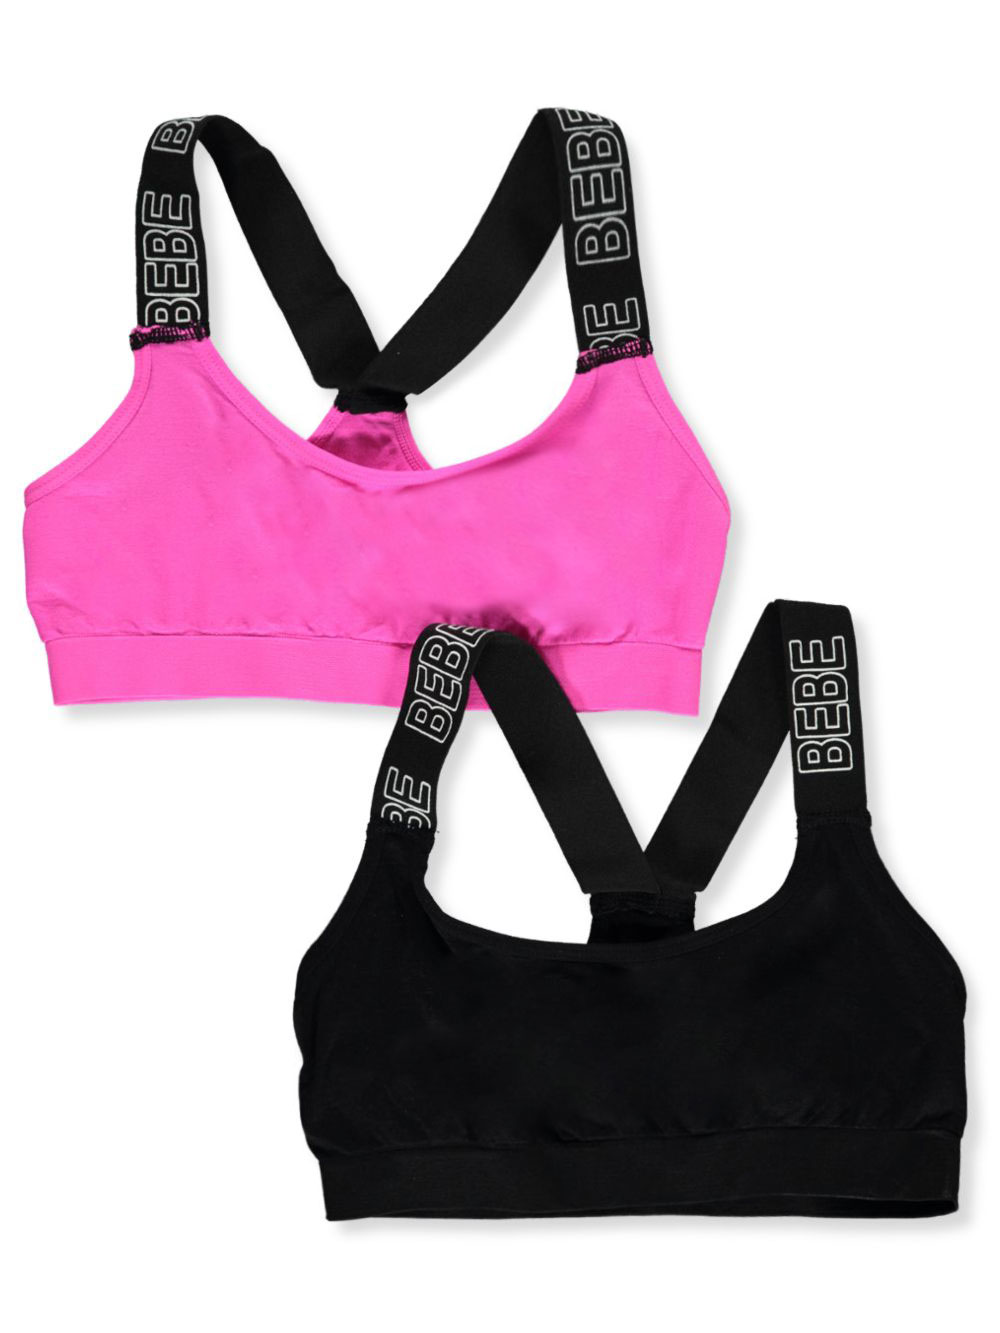 Girls Hot Pink Training Bras